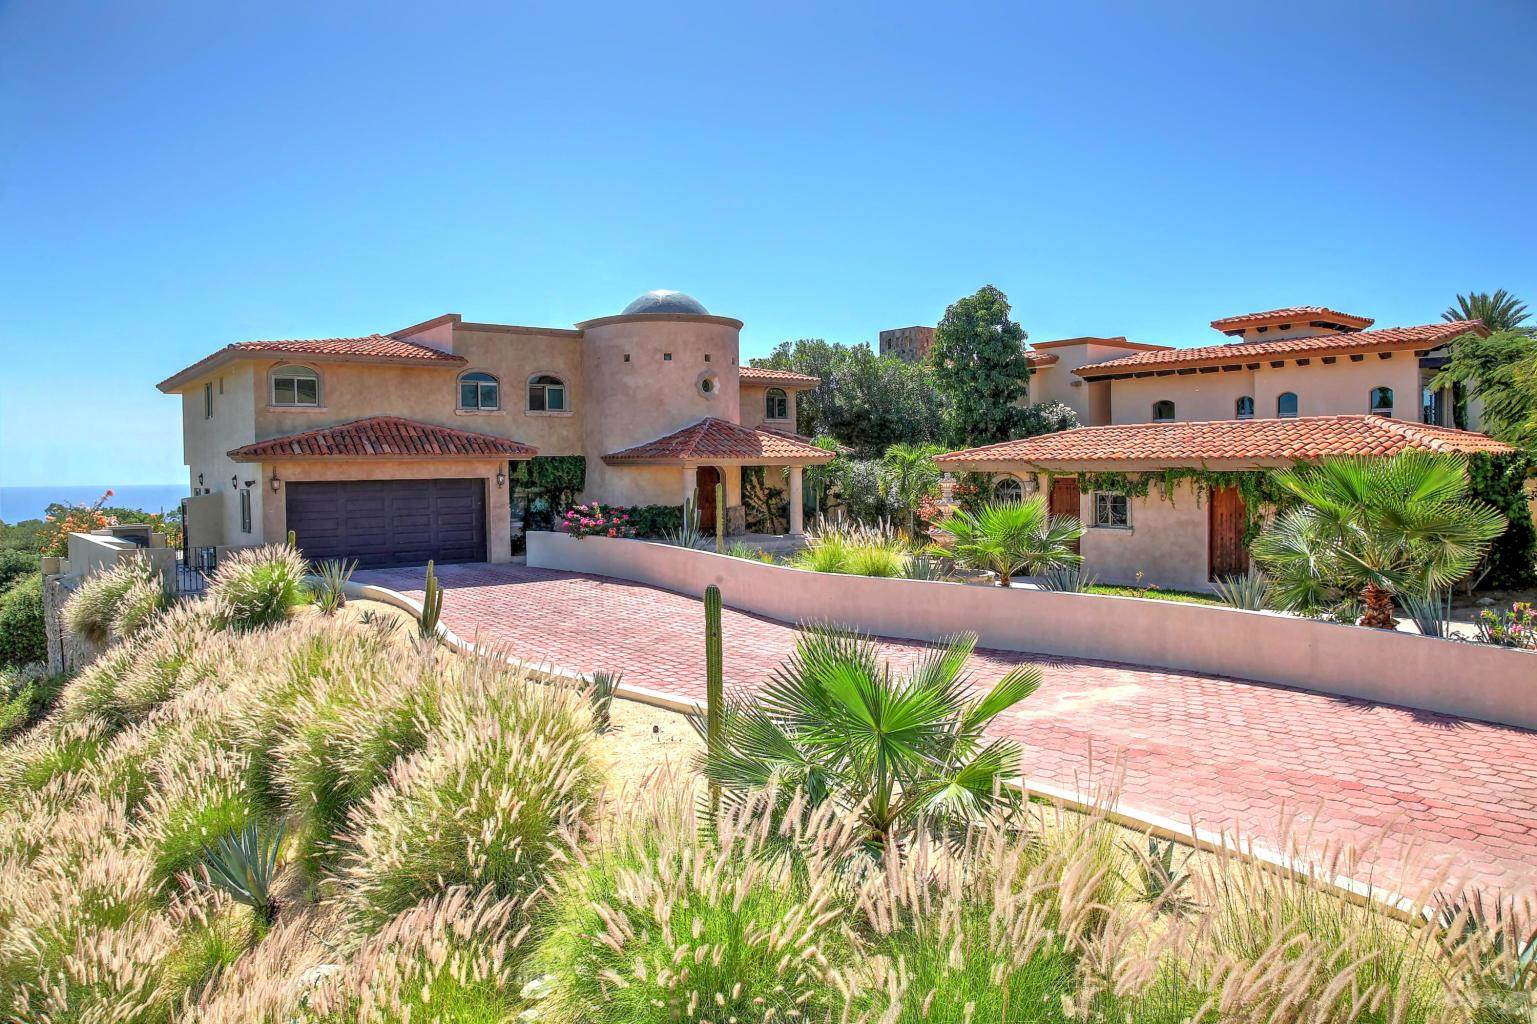 Residential For Sale in FOR SALE ONE OF A KIND HOUSE AT CSL CORRIDOR $899,000 USD., Cabo San Lucas, Baja California Sur ,23400  , Mexico